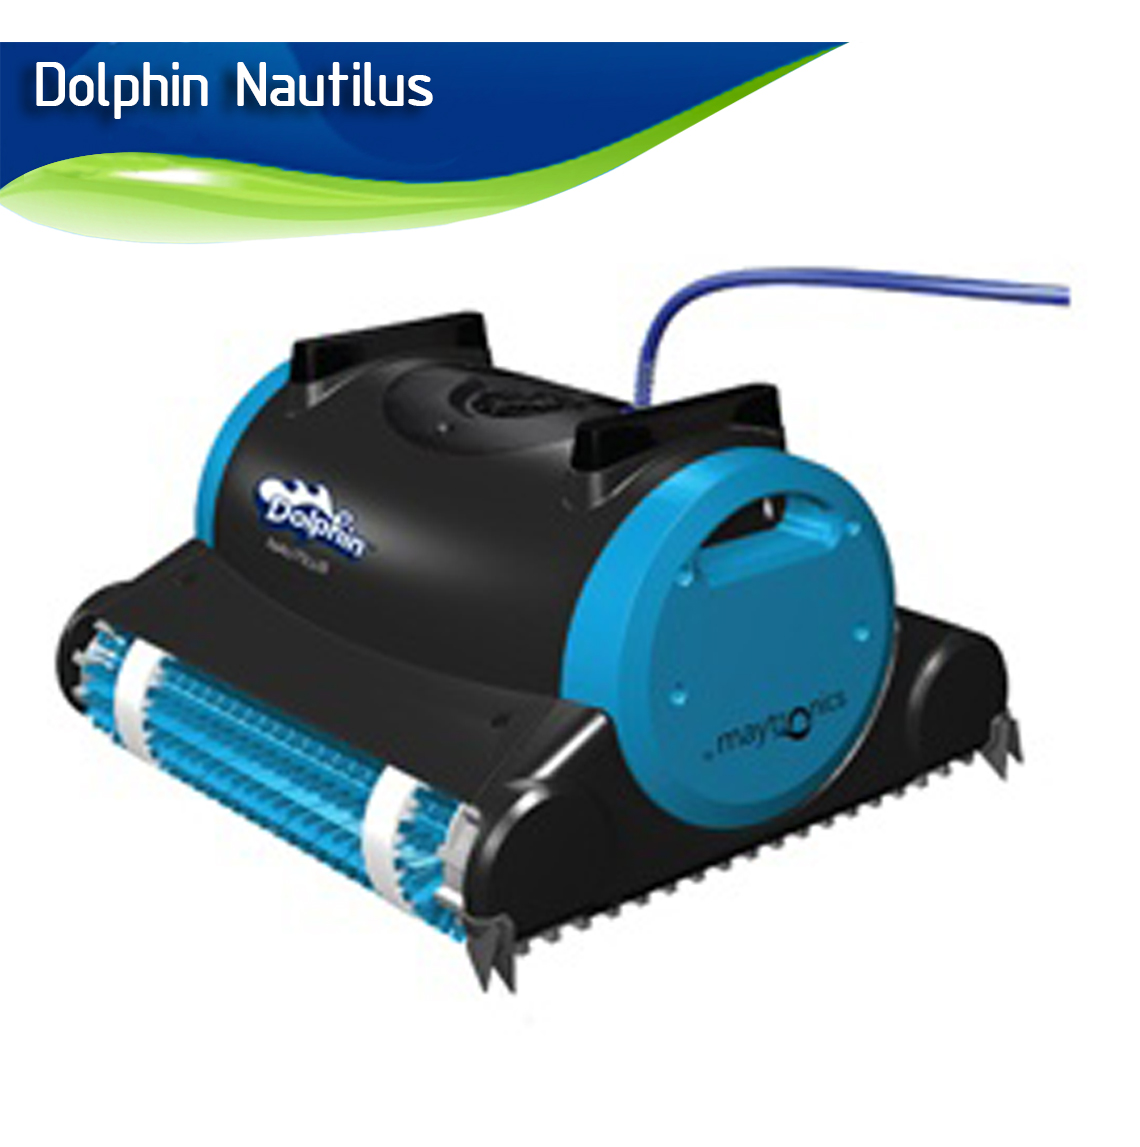 dolphin nautilus review best robotic pool cleaners. Black Bedroom Furniture Sets. Home Design Ideas